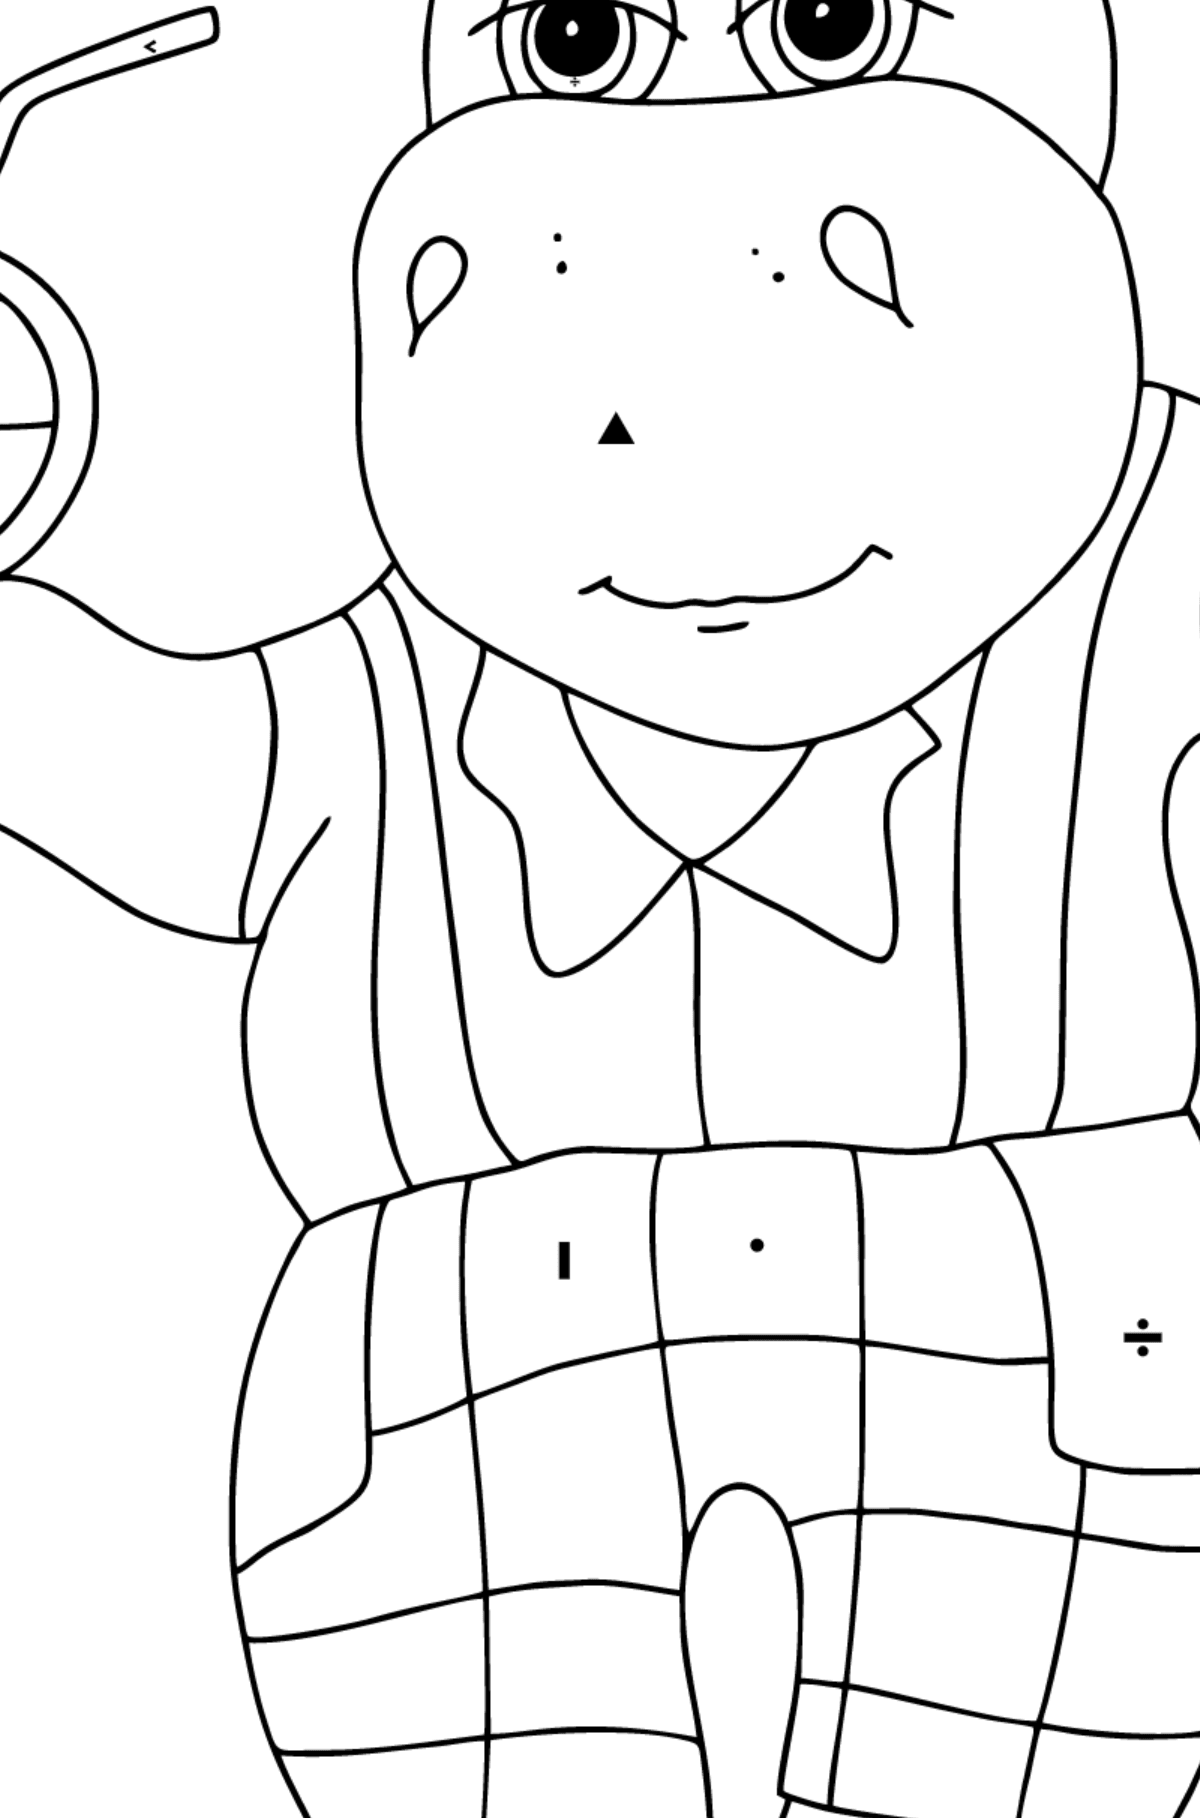 Coloring Page - A Hippo on a Beach with Juice for Children  - Color by Special Symbols